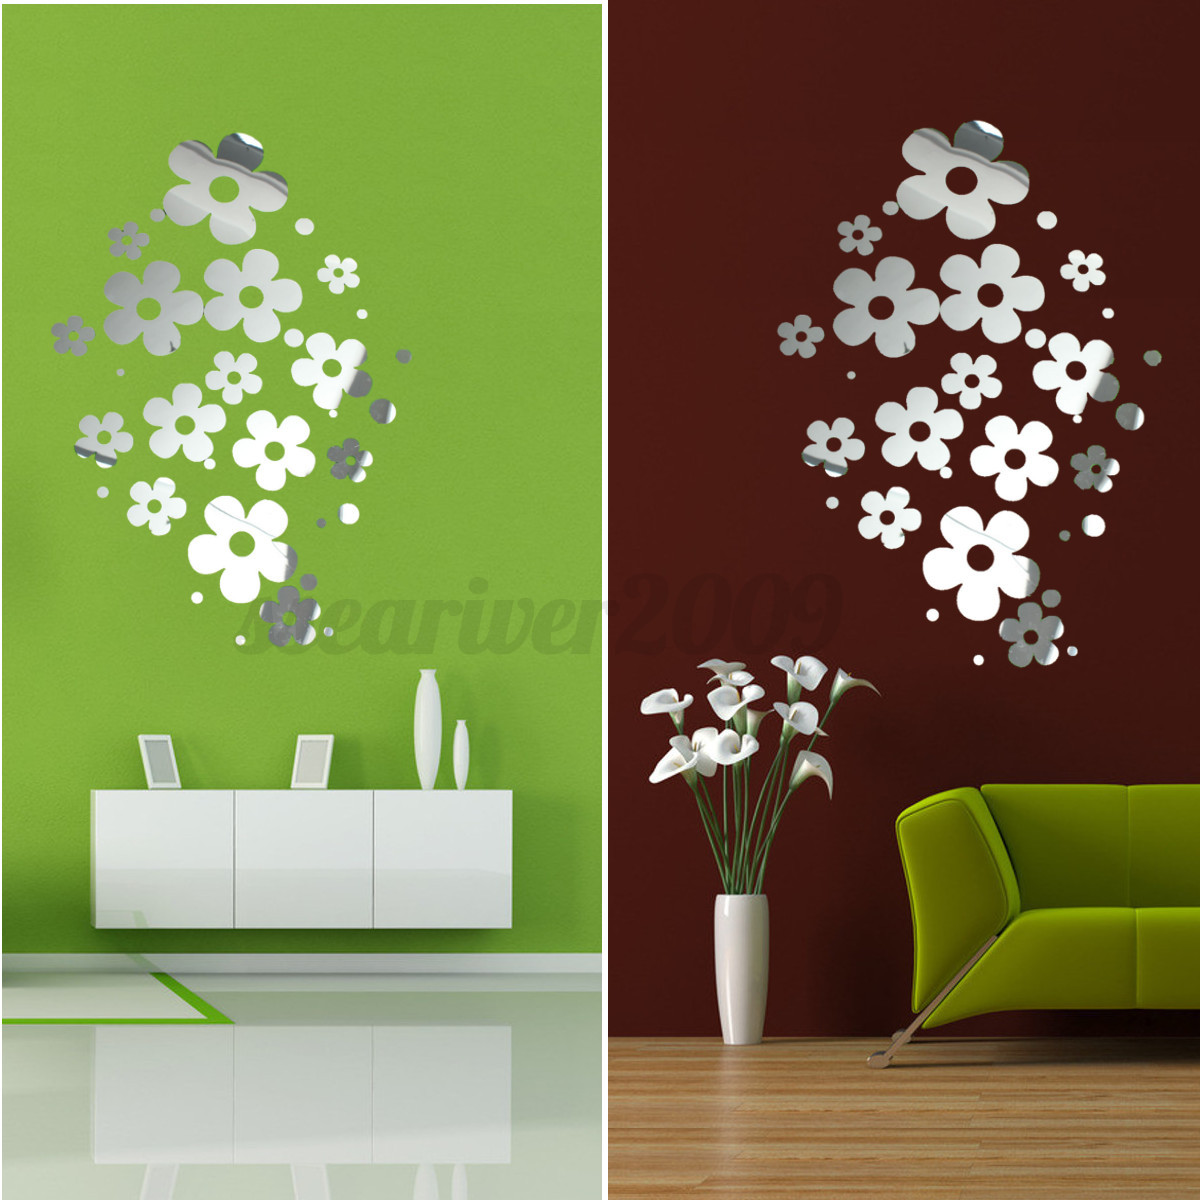 diy 3d silver mirror surface wall sticker mural decal art living room home decor ebay. Black Bedroom Furniture Sets. Home Design Ideas